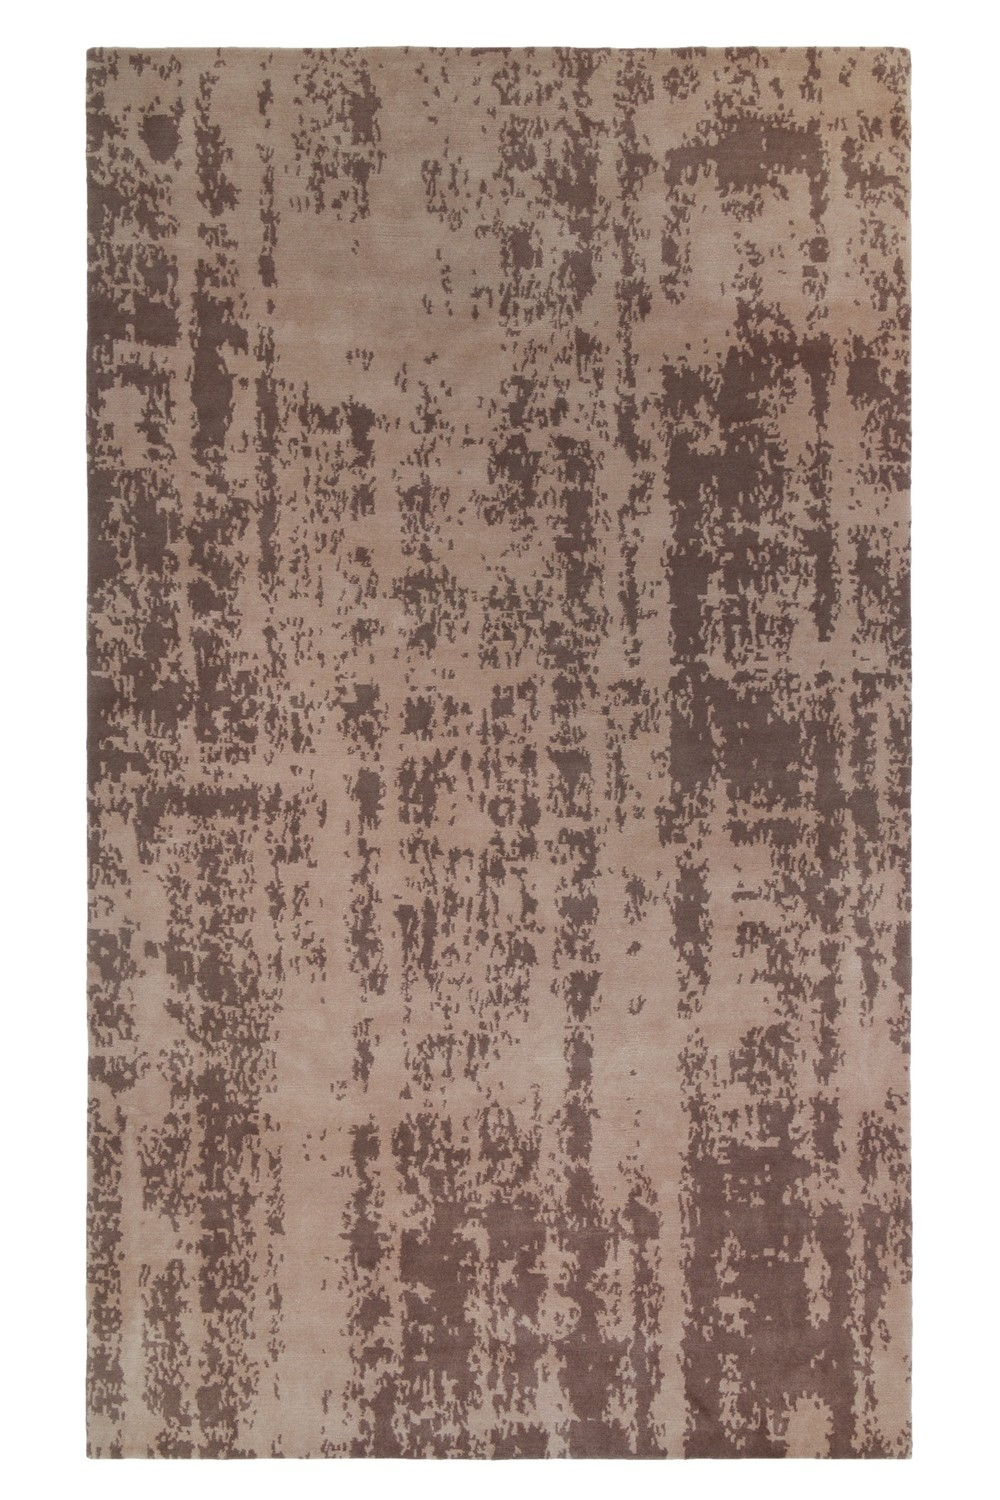 Nepalese Tonal design rug size 3.80 x 2.20 Was £2,500